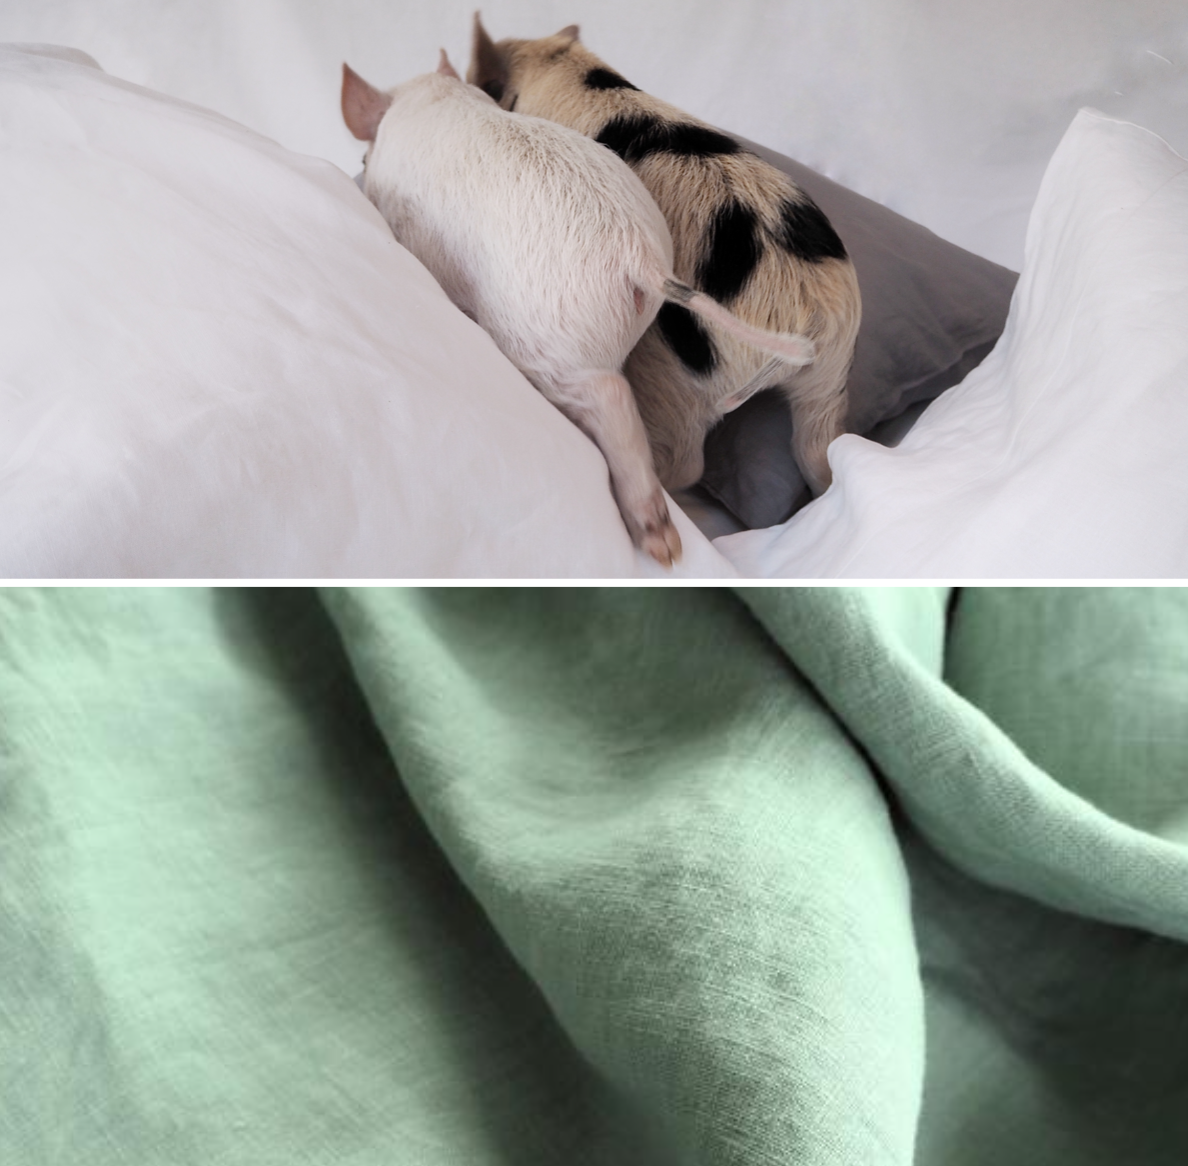 Piglet running through bed sheets and link to Piglet Green Duvet Cover